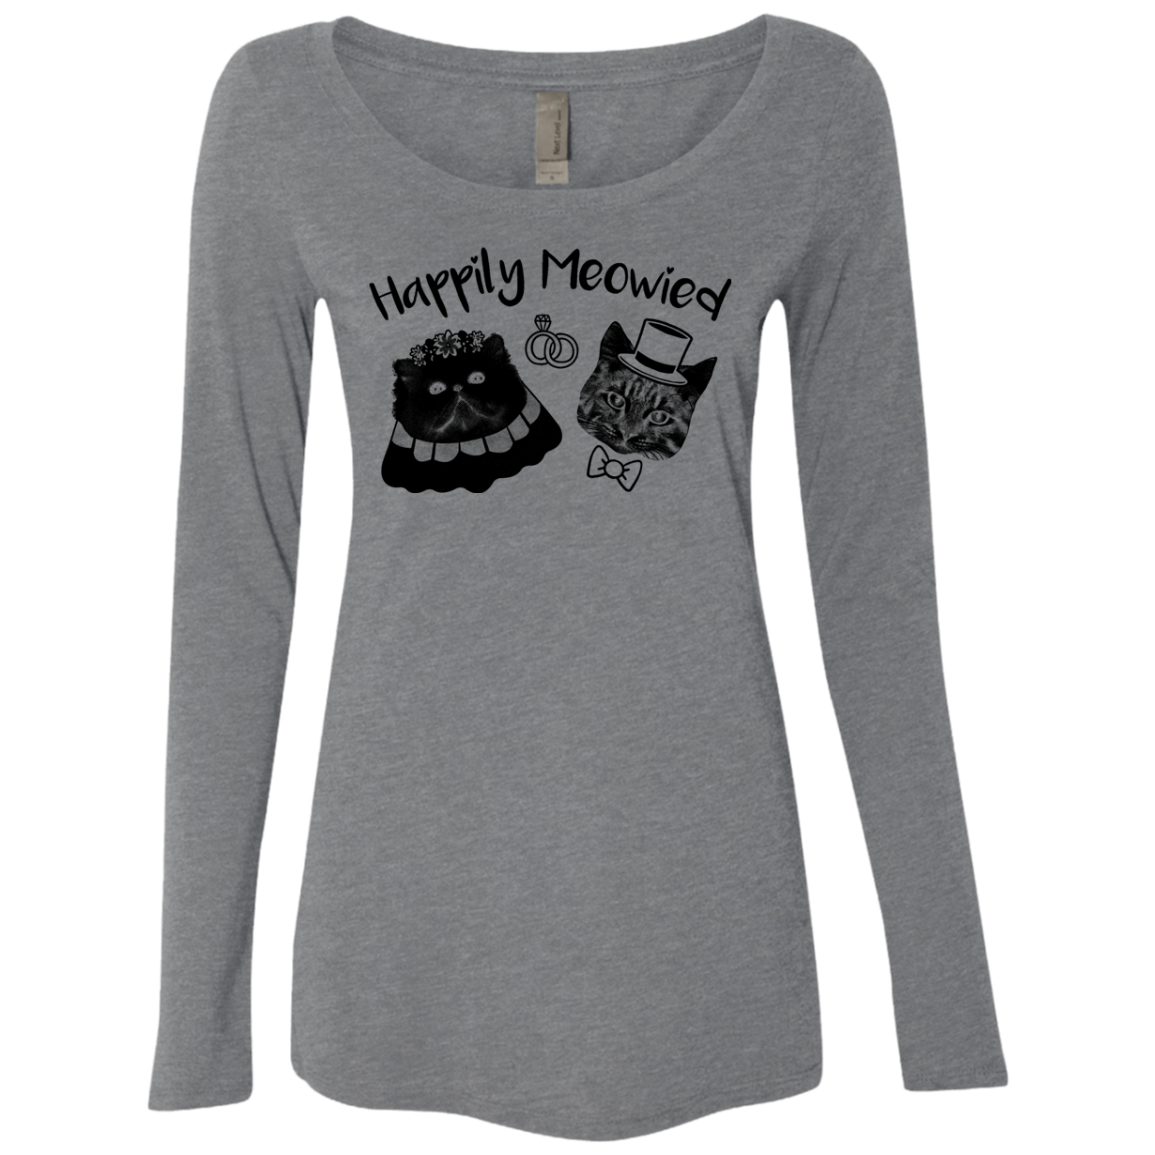 Happily Meowied Women's Long Sleeve Tee